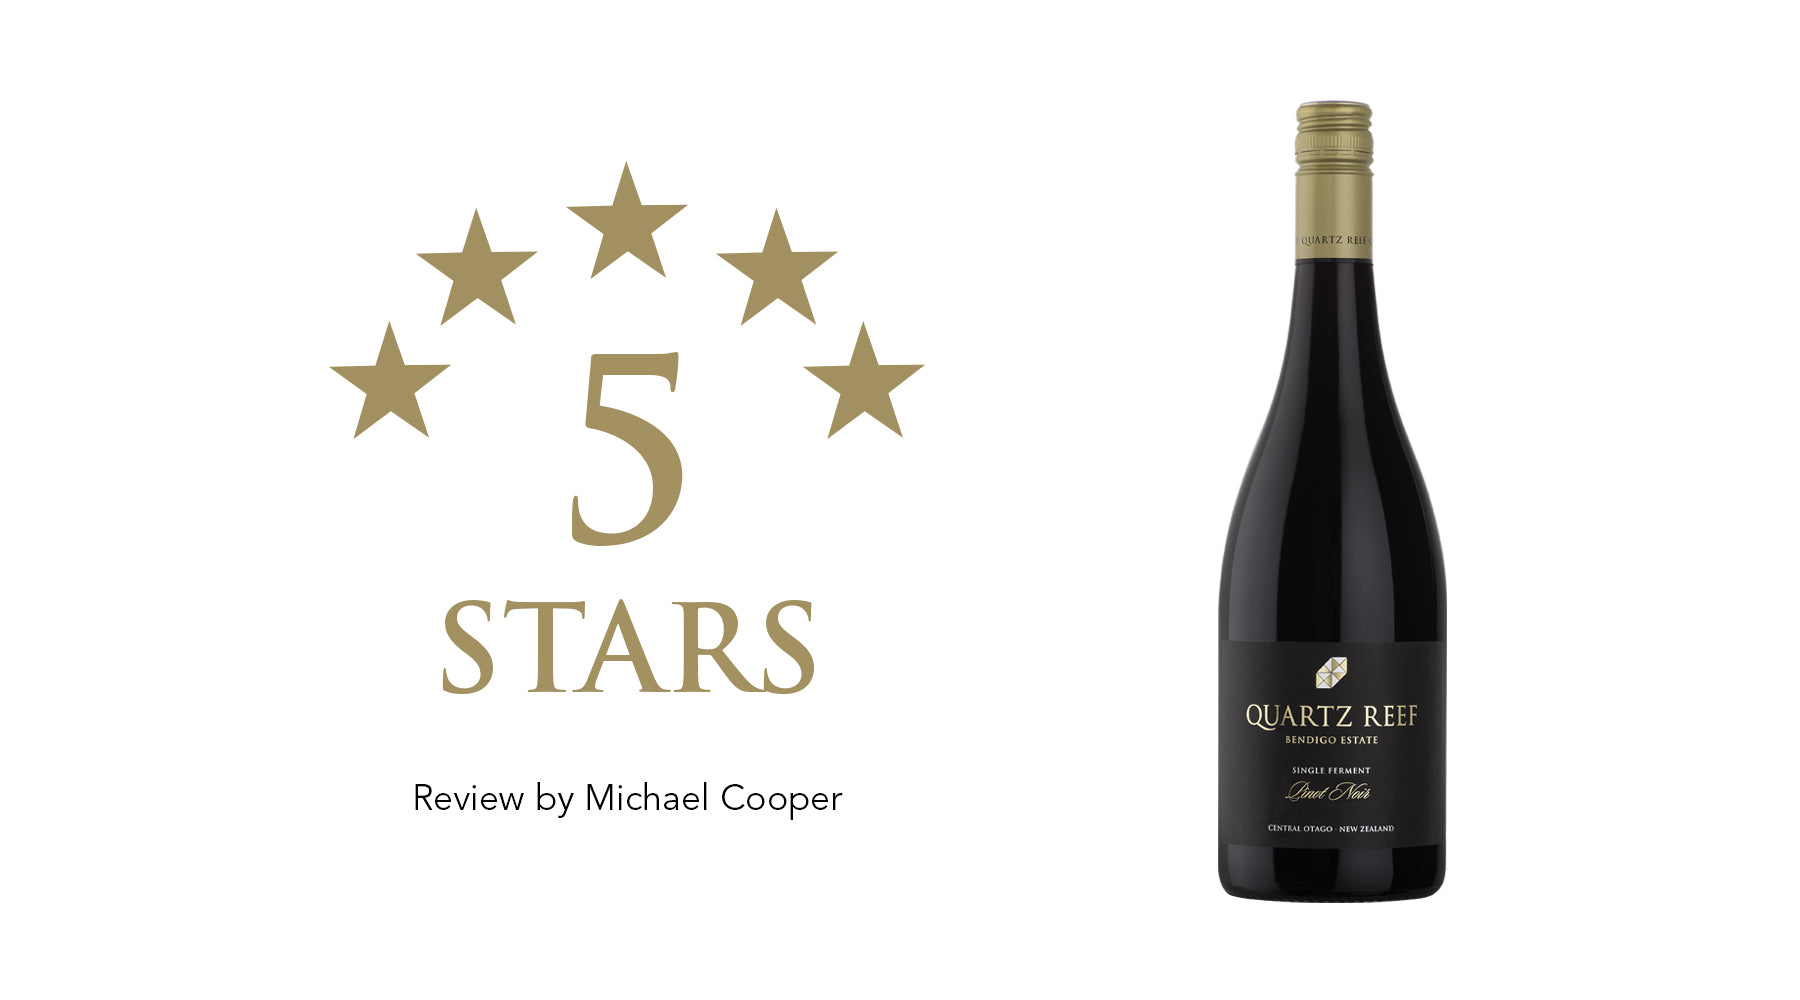 Single Ferment Pinot Noir 2018 - Awarded 5 Stars and Super Classic